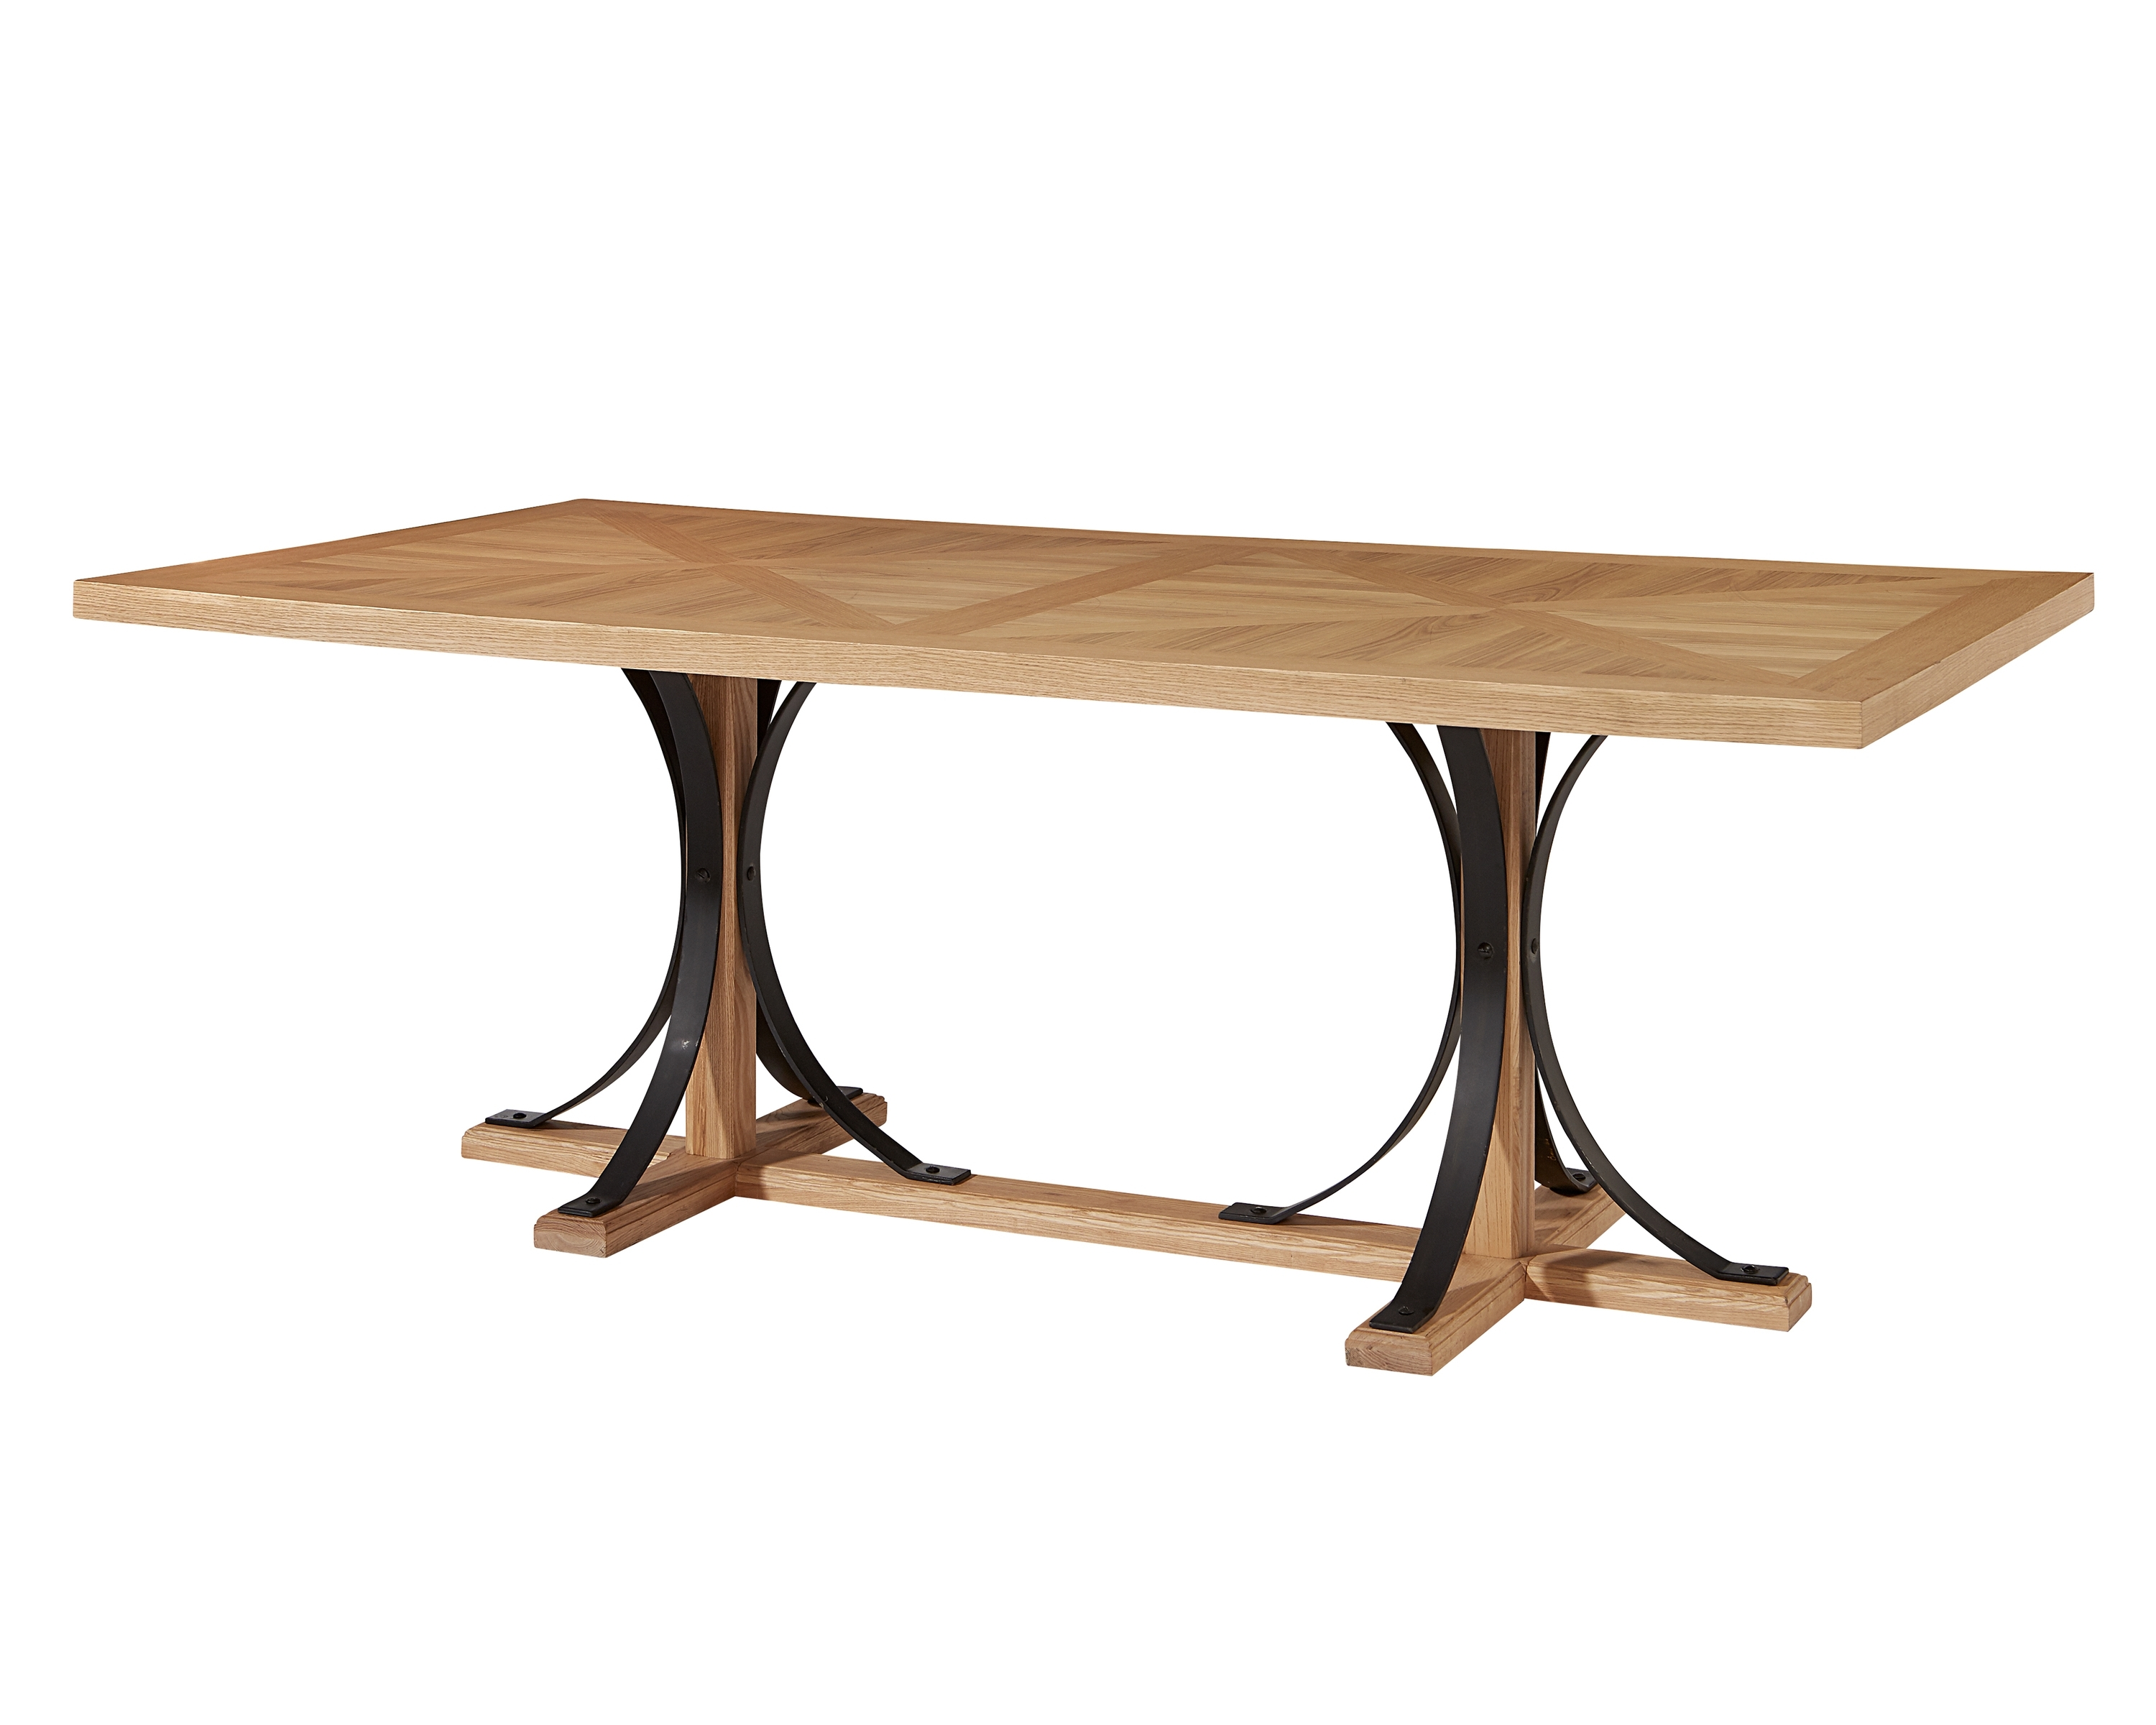 Iron Trestle Dining Table – Magnolia Home With Recent Magnolia Home Iron Trestle Cocktail Tables (View 18 of 20)